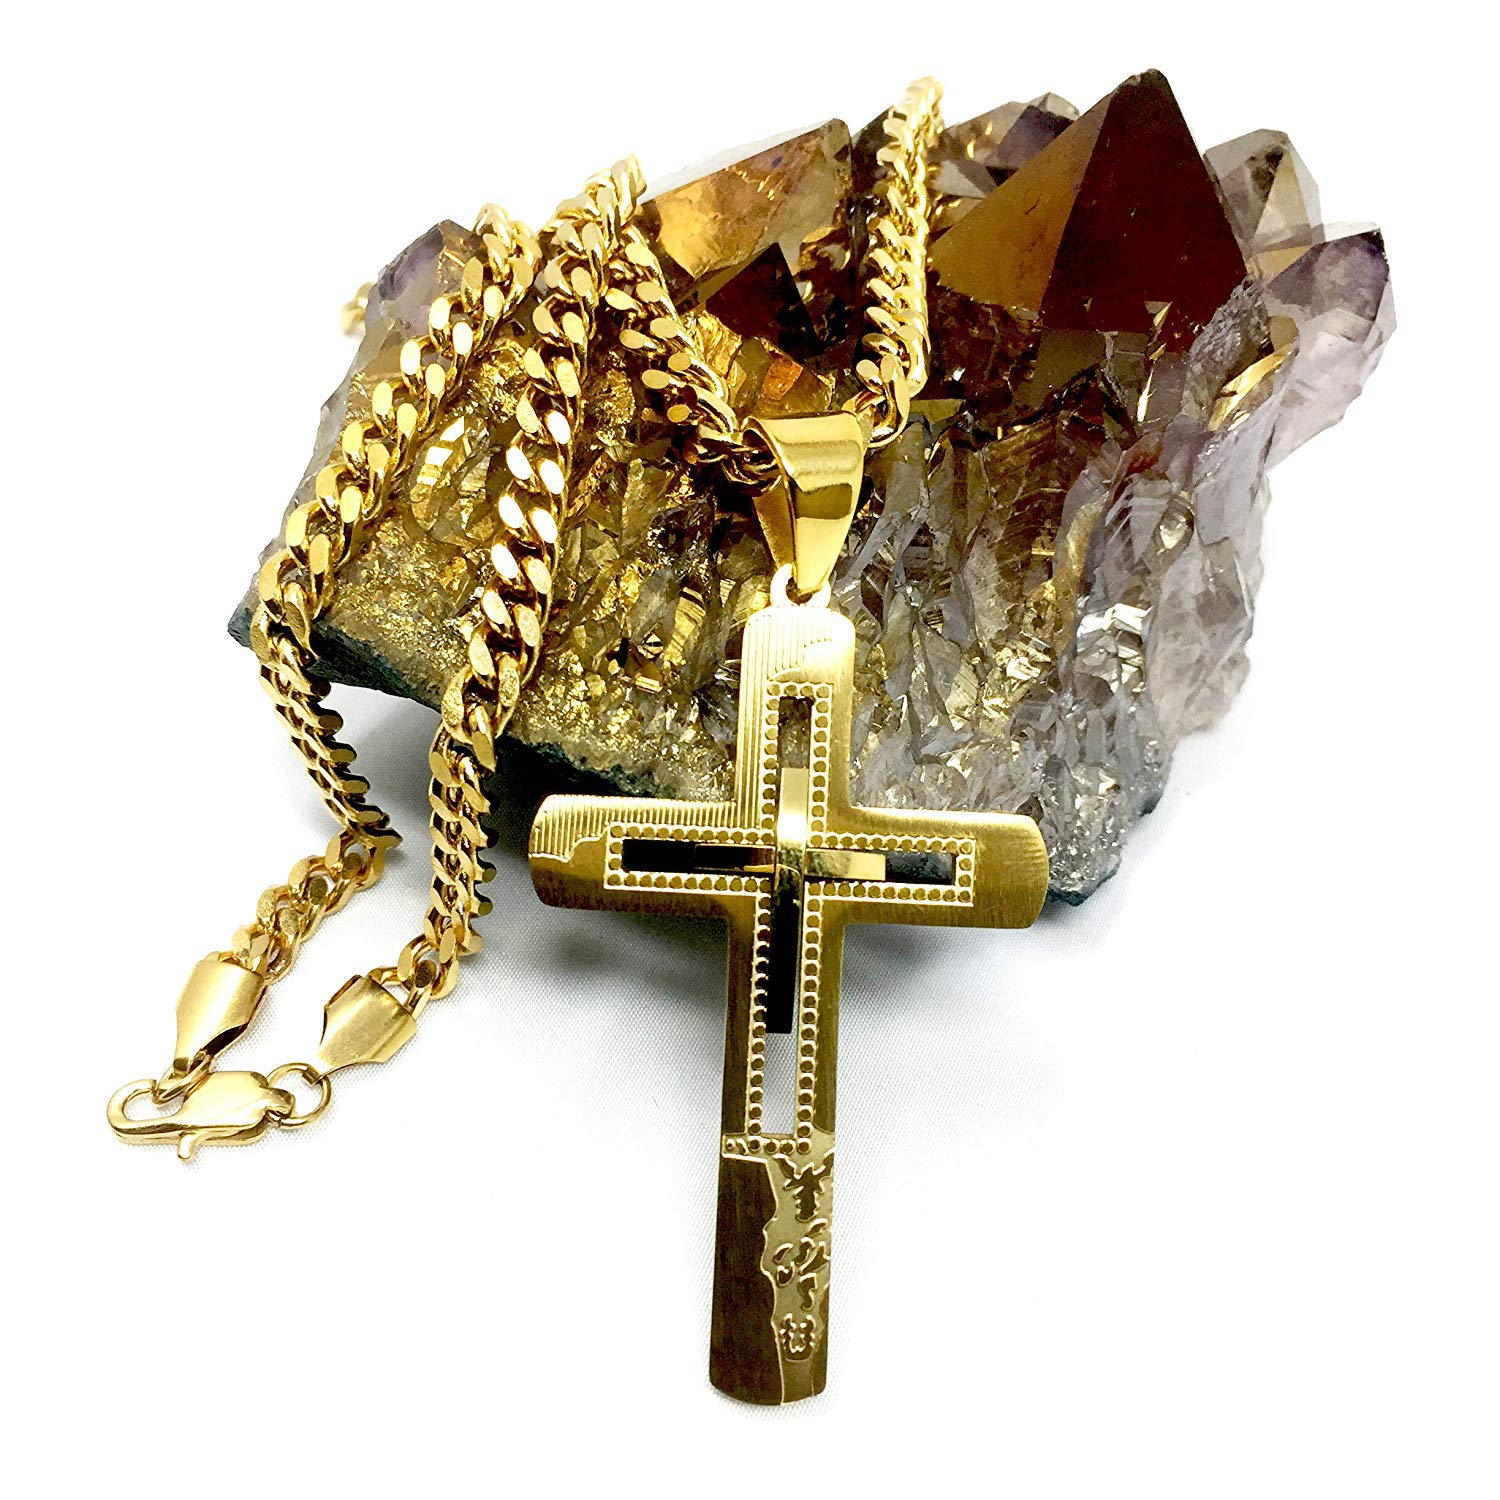 Hollywood Jewelry 18K Gold Chain Cross Pendant Necklace for Men, Women w/Real Strong Solid Clasp Miami Cuban Link Style